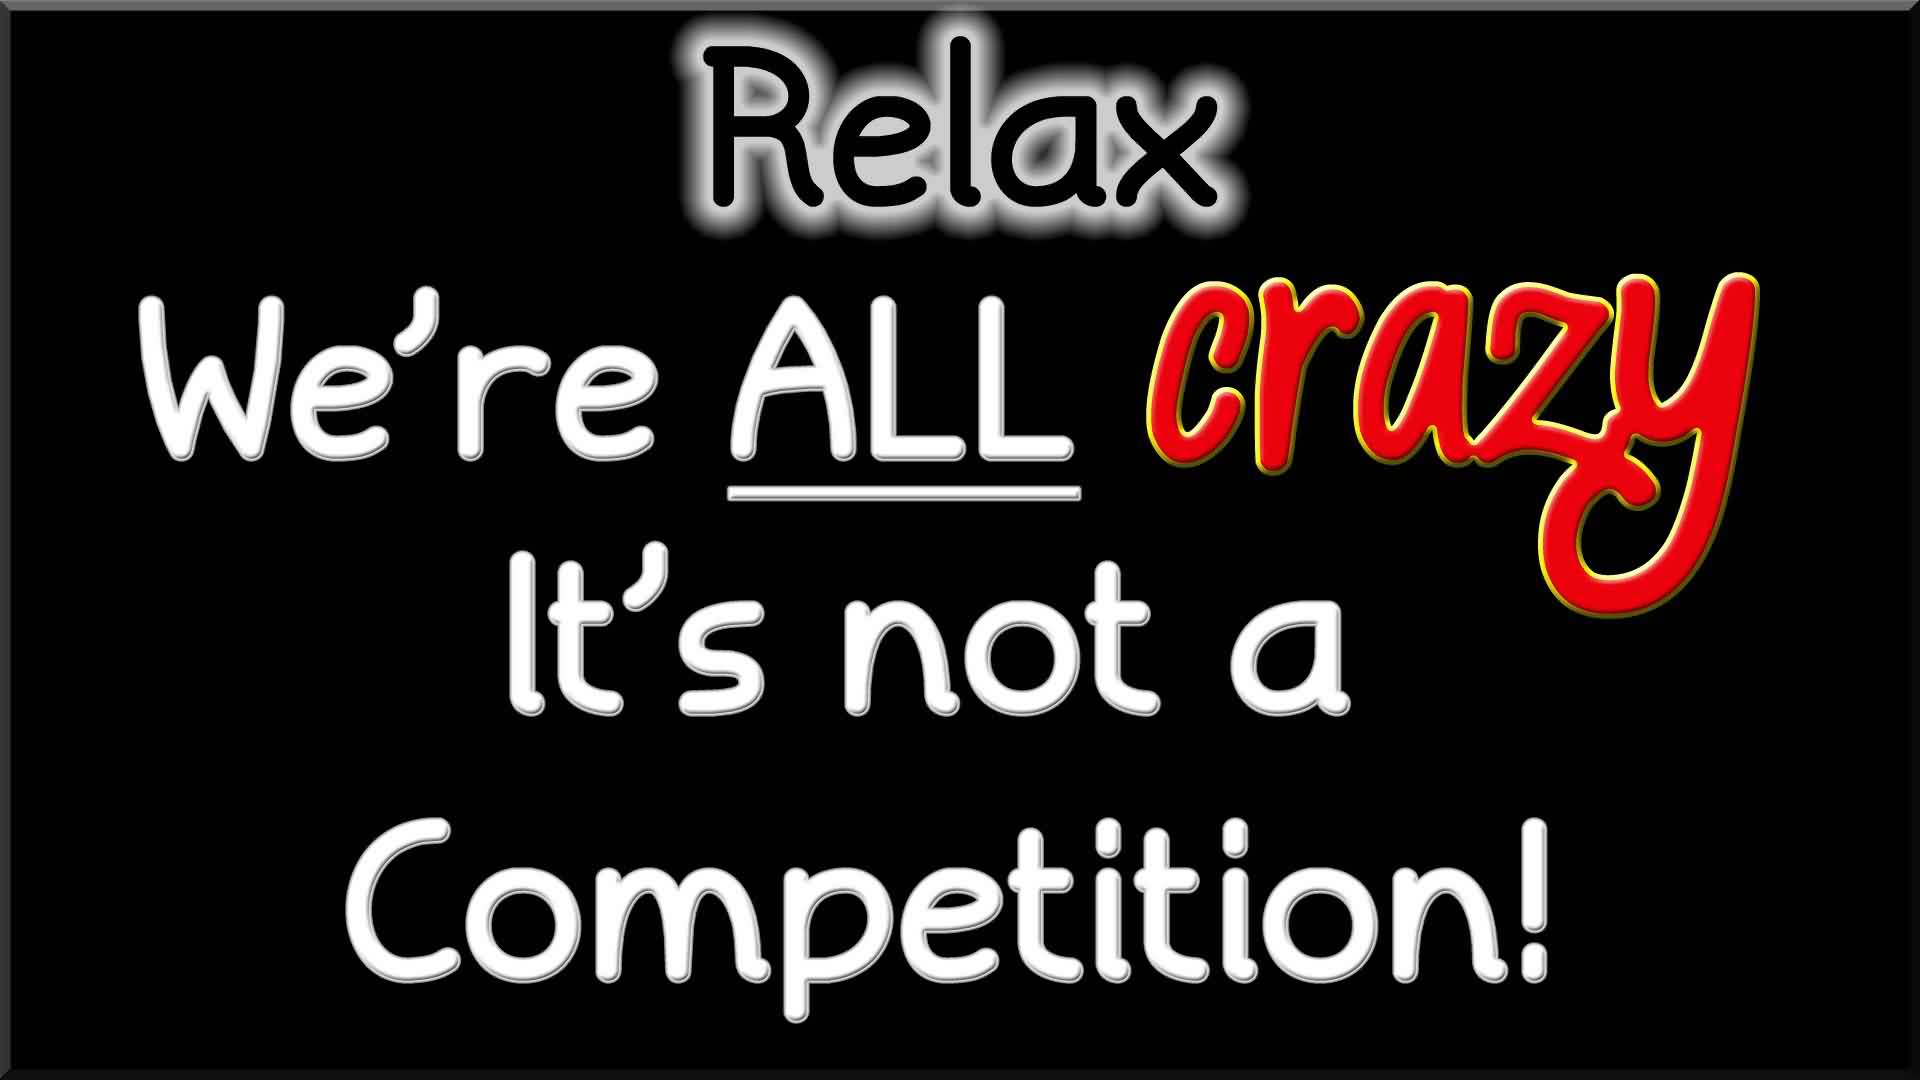 Short New Funny Facebook Quotes Images We Are All Crazy Its Not A Competition